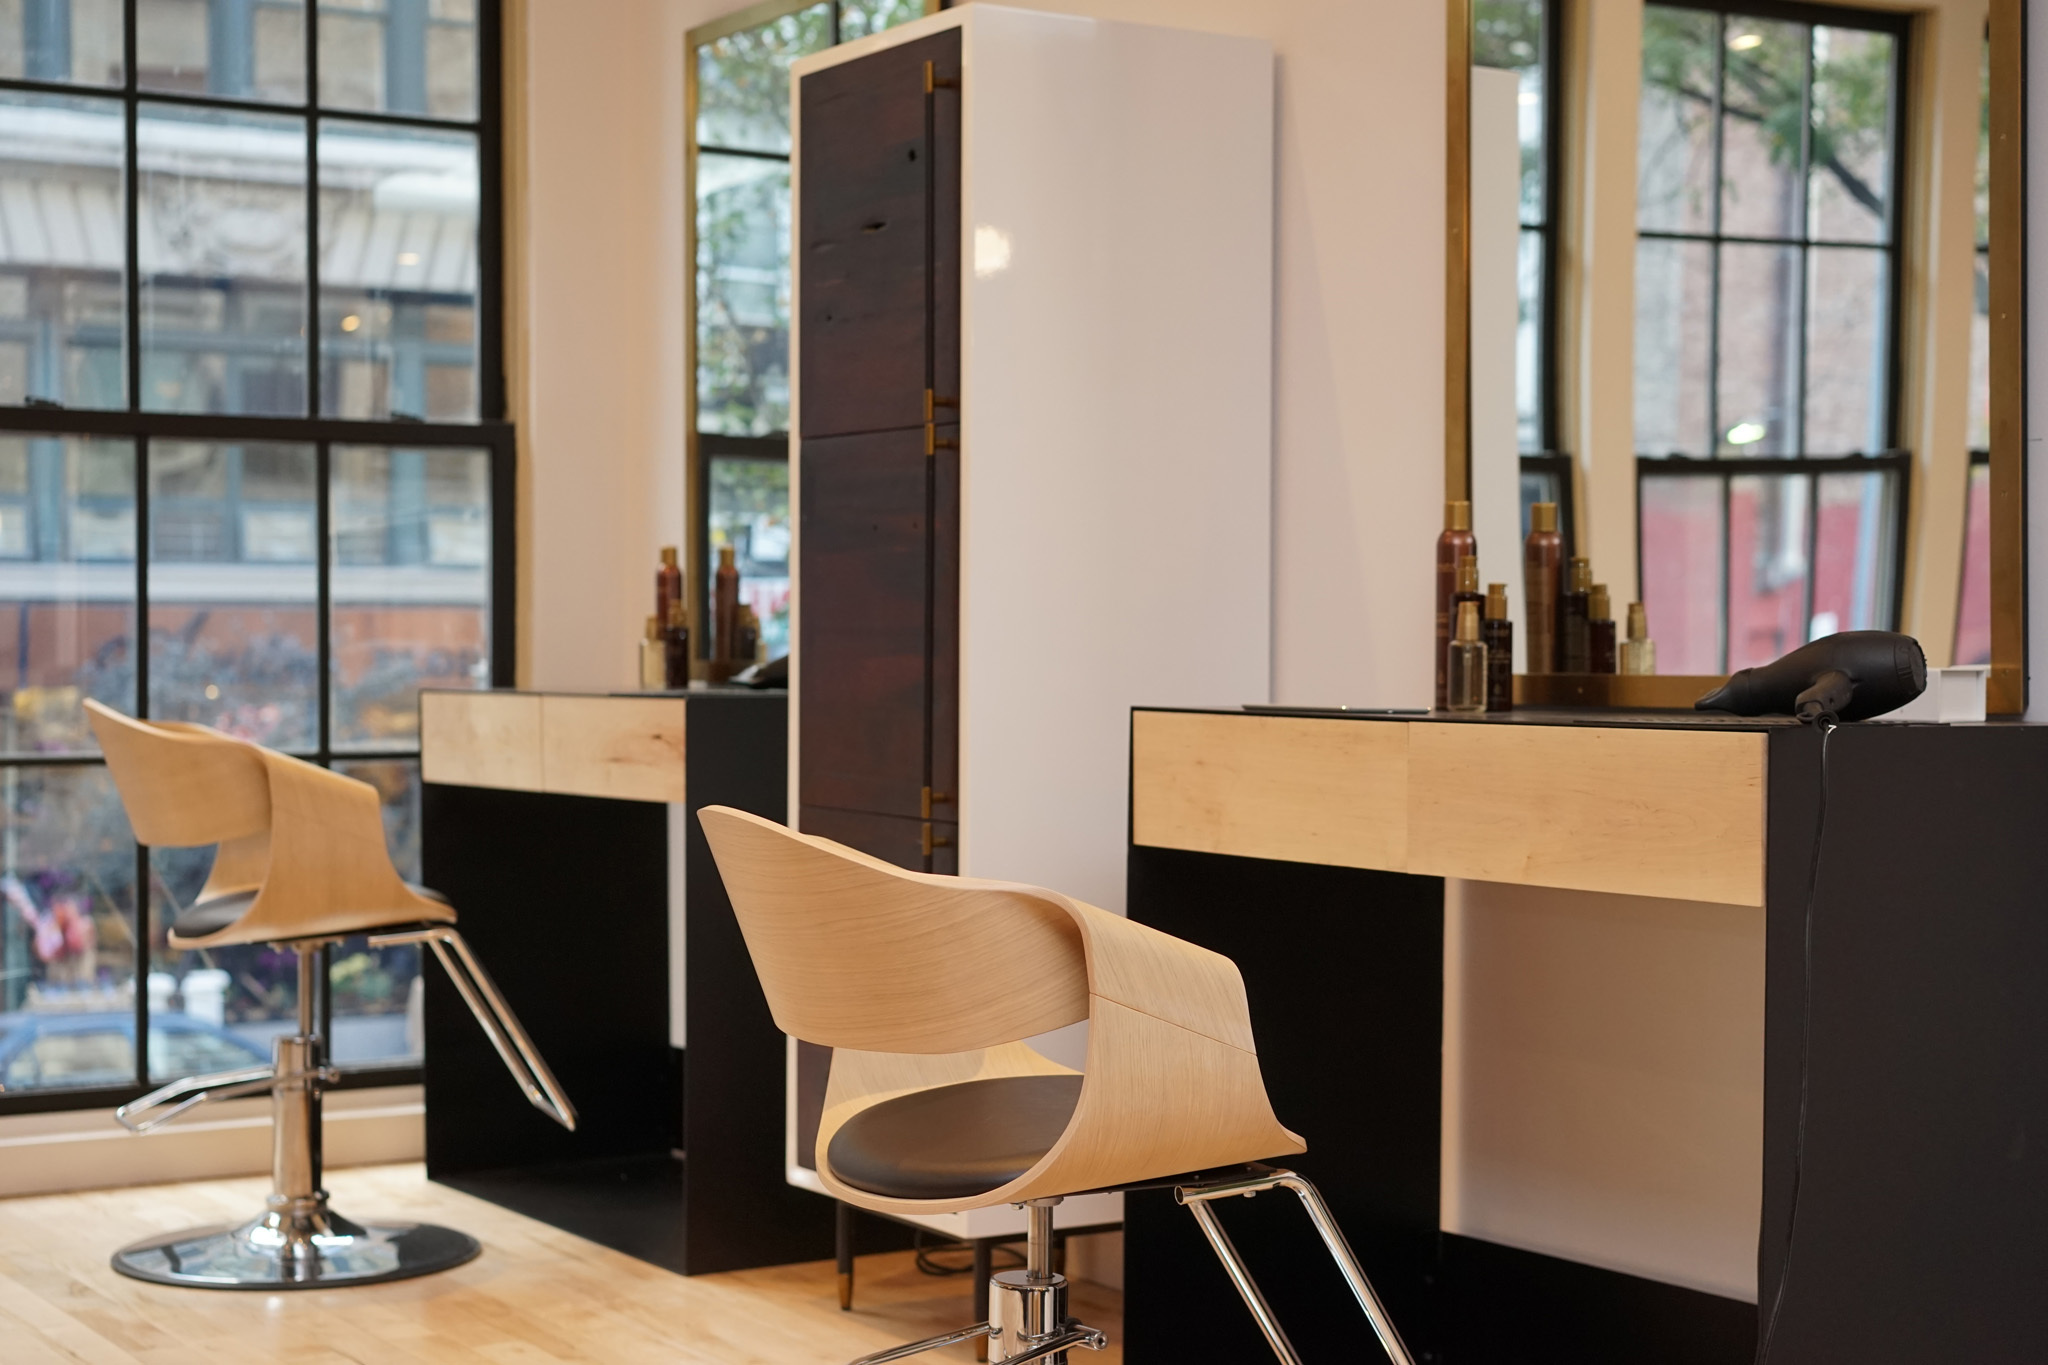 The Best Hair Salon : Best hair salons in NYC: Where to get the best haircut